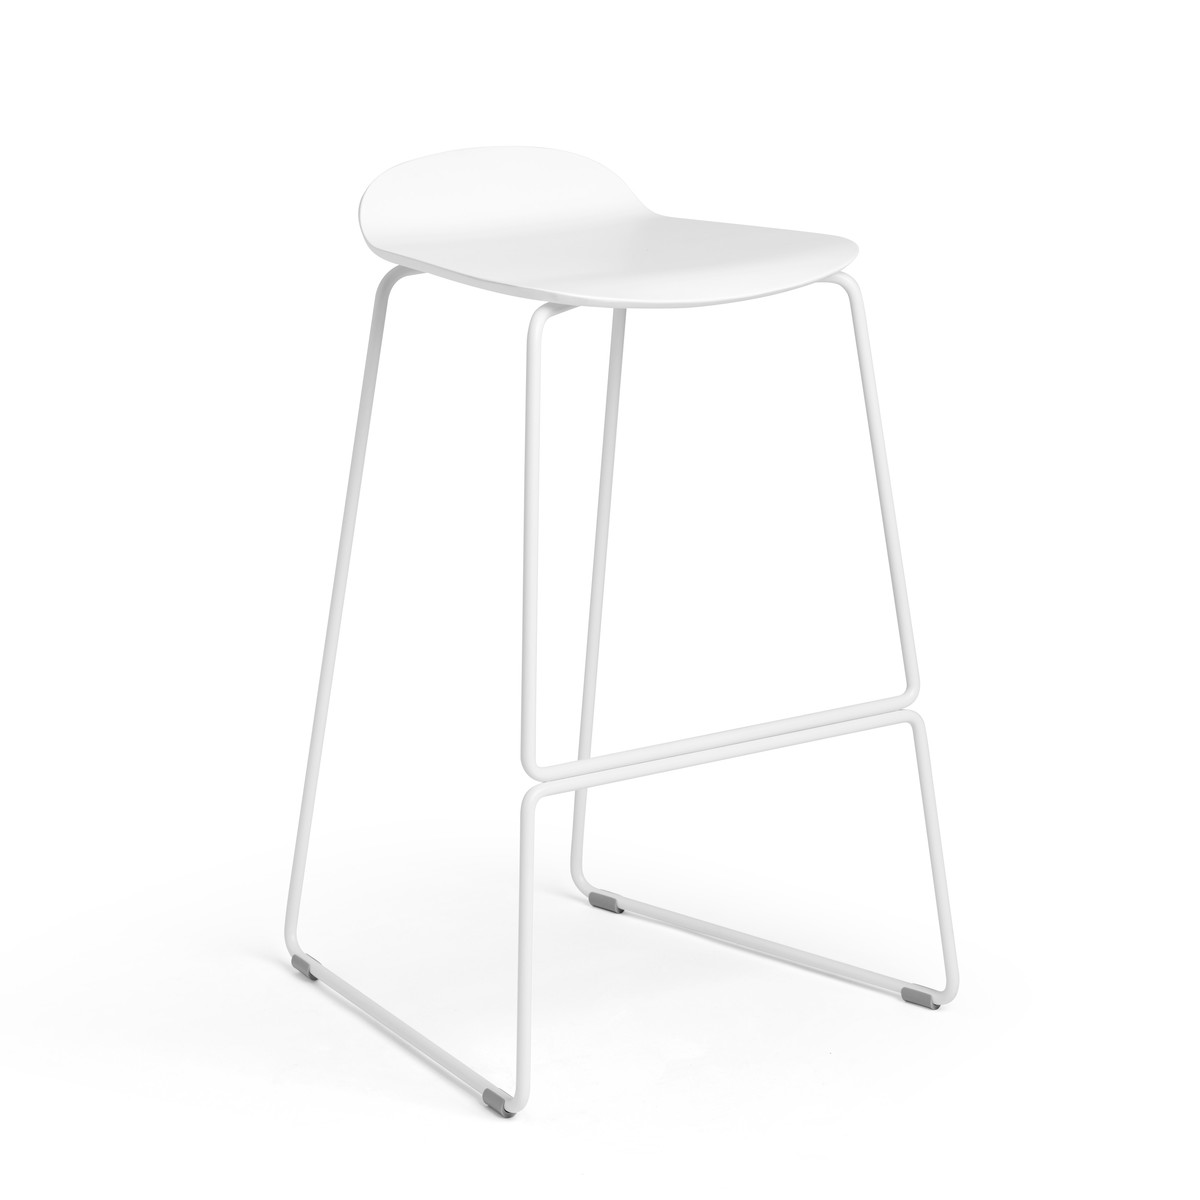 office chair vs stool covers amazon canada white upbeat modern furniture poppin hi res